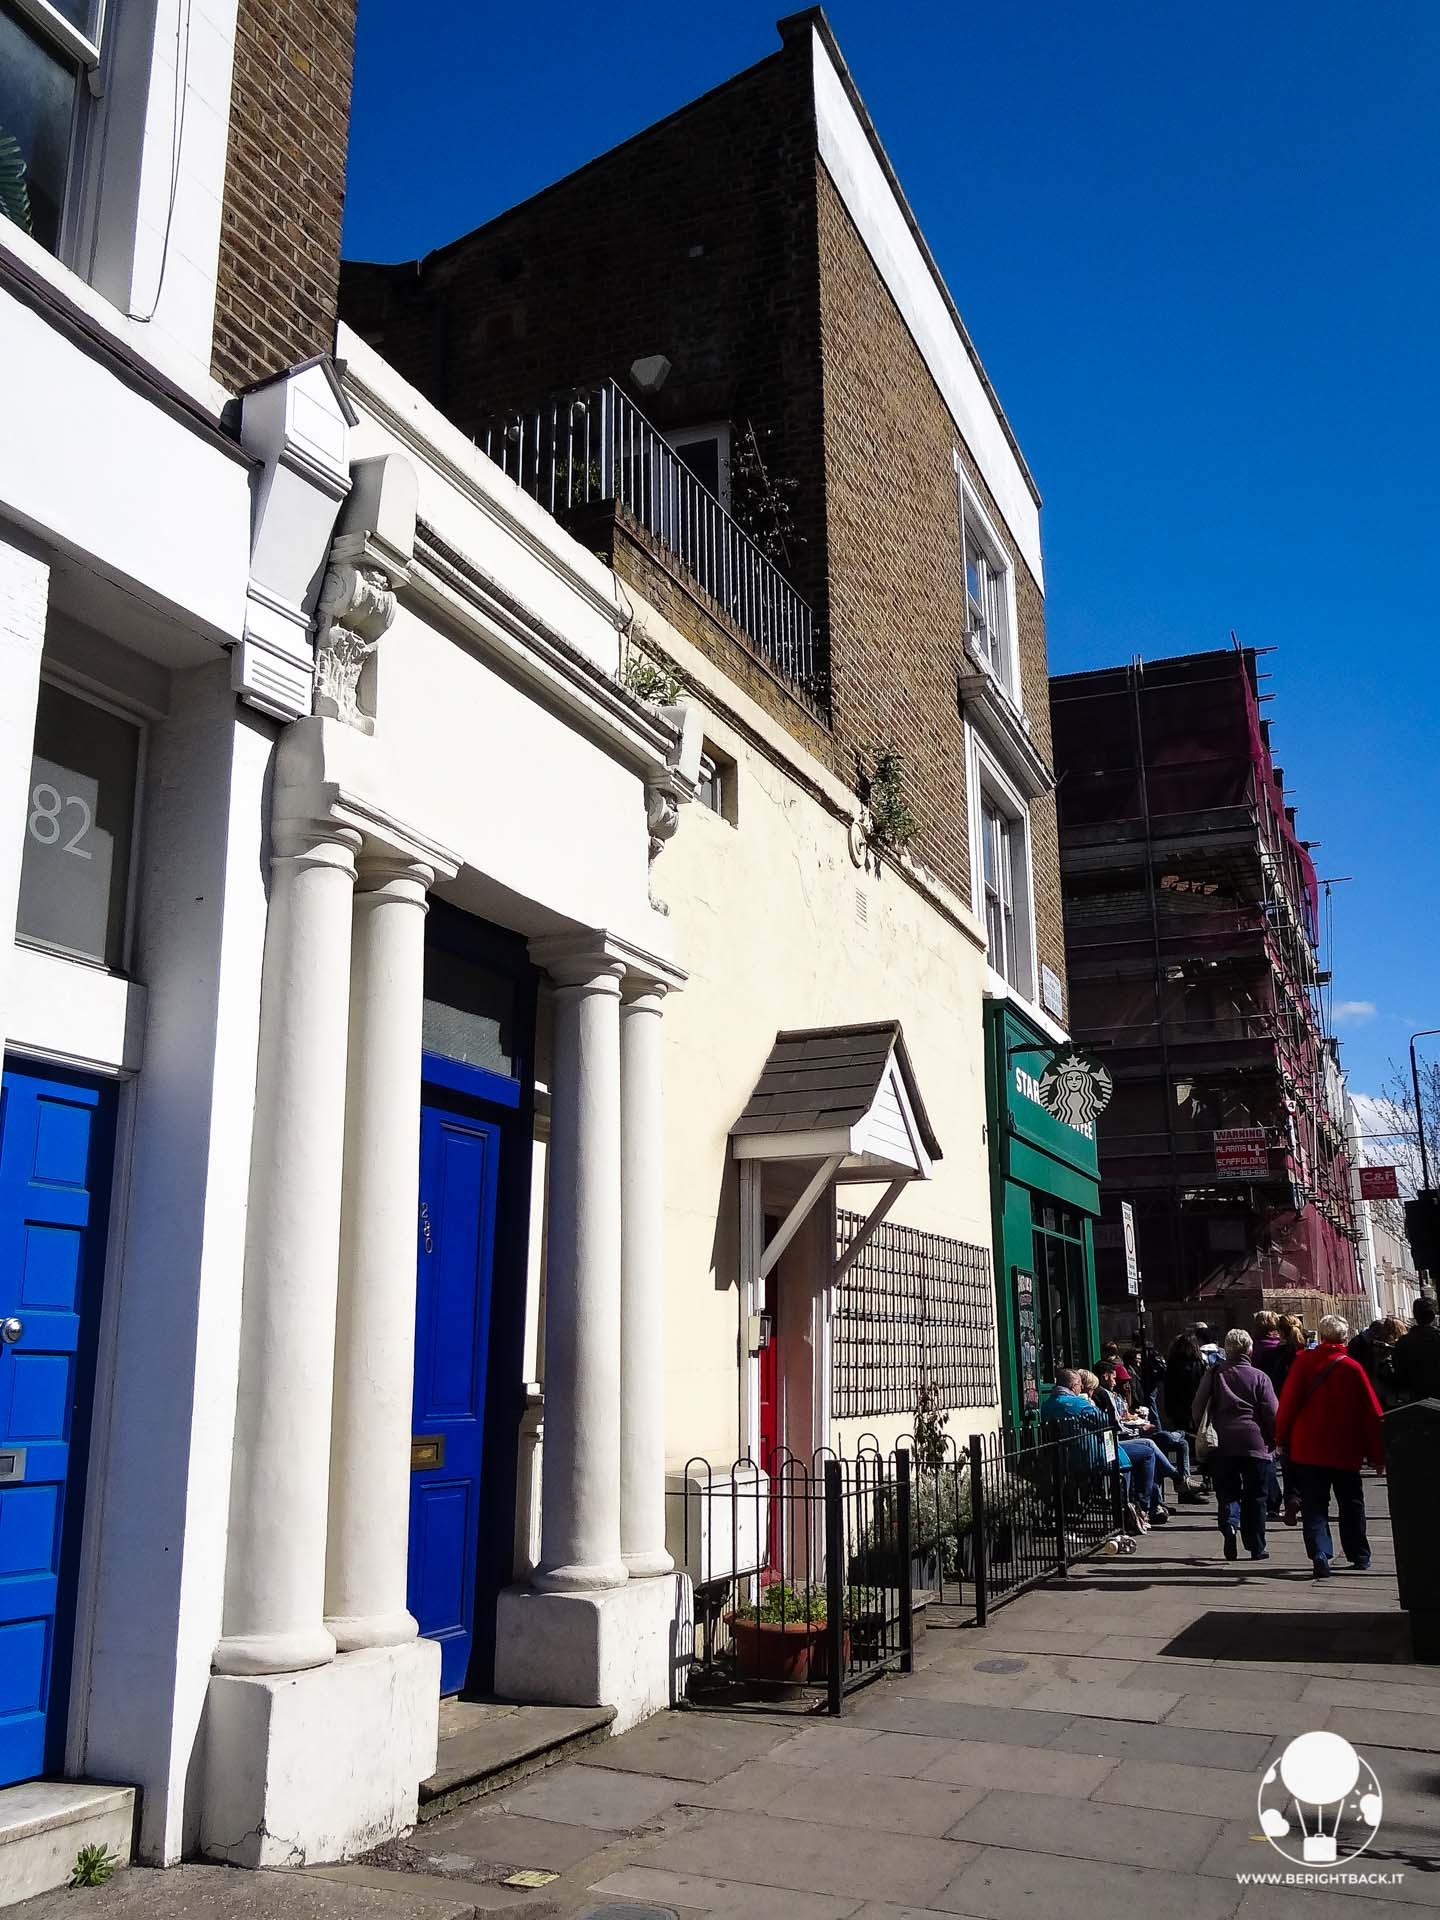 notting hill londra blue door casa william tacker high grant